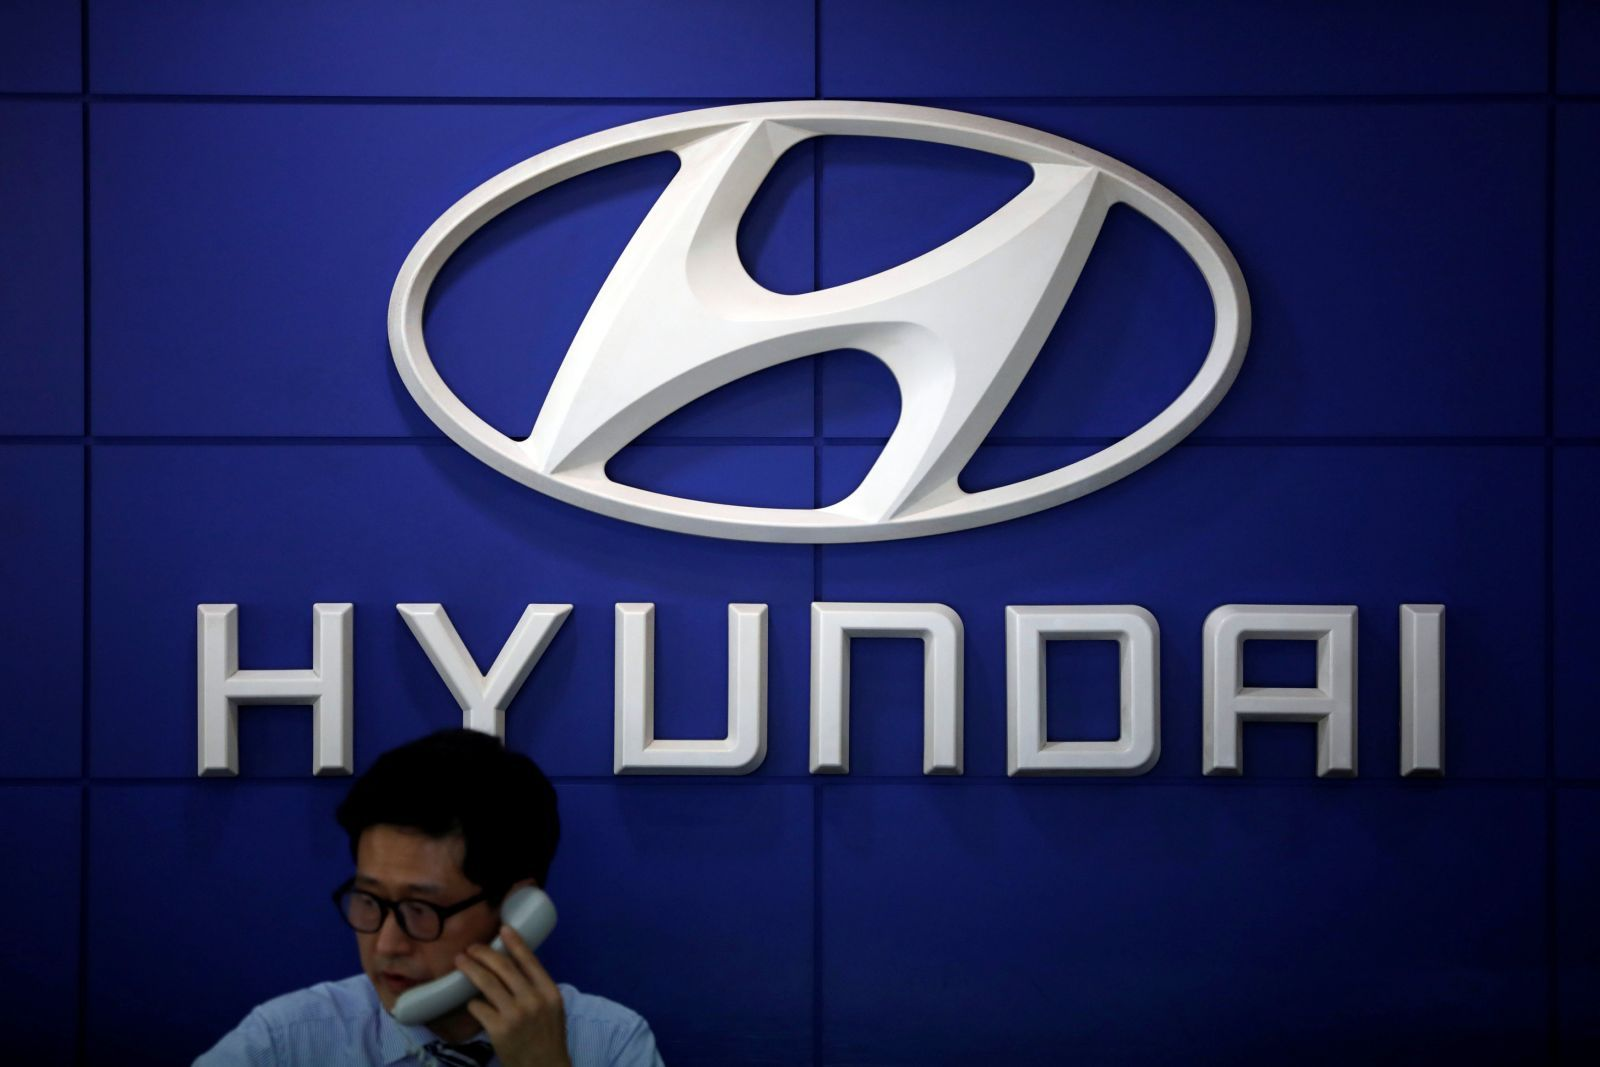 Hyundai motor company united states - Hyundai Motor Plans To Launch A Pickup Truck In The United States As Part Of A Broader Plan To Catch Up With A Shift Away From Sedans In One Of The Korean